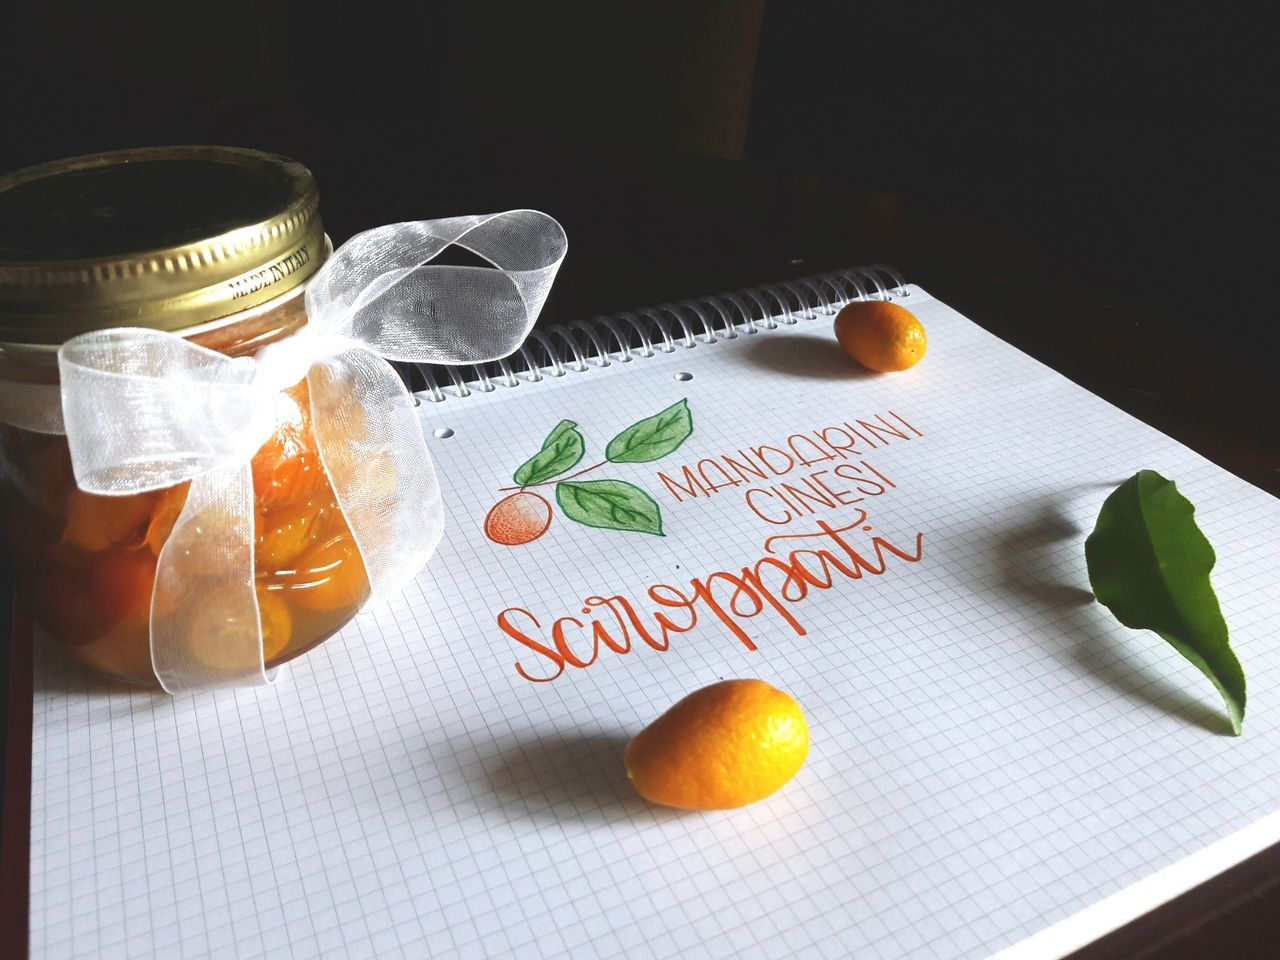 Text Paper No People Celebration Food Table Close-up Indoors  Kumquat Foodphotography Handwriting  Drawing Drawingtime Sketch Sketchbook Drinking Glass Pattern Marmalade Sessions Marmalade Foodporn Handmade Crafts CalligraphyPractice Typeverything